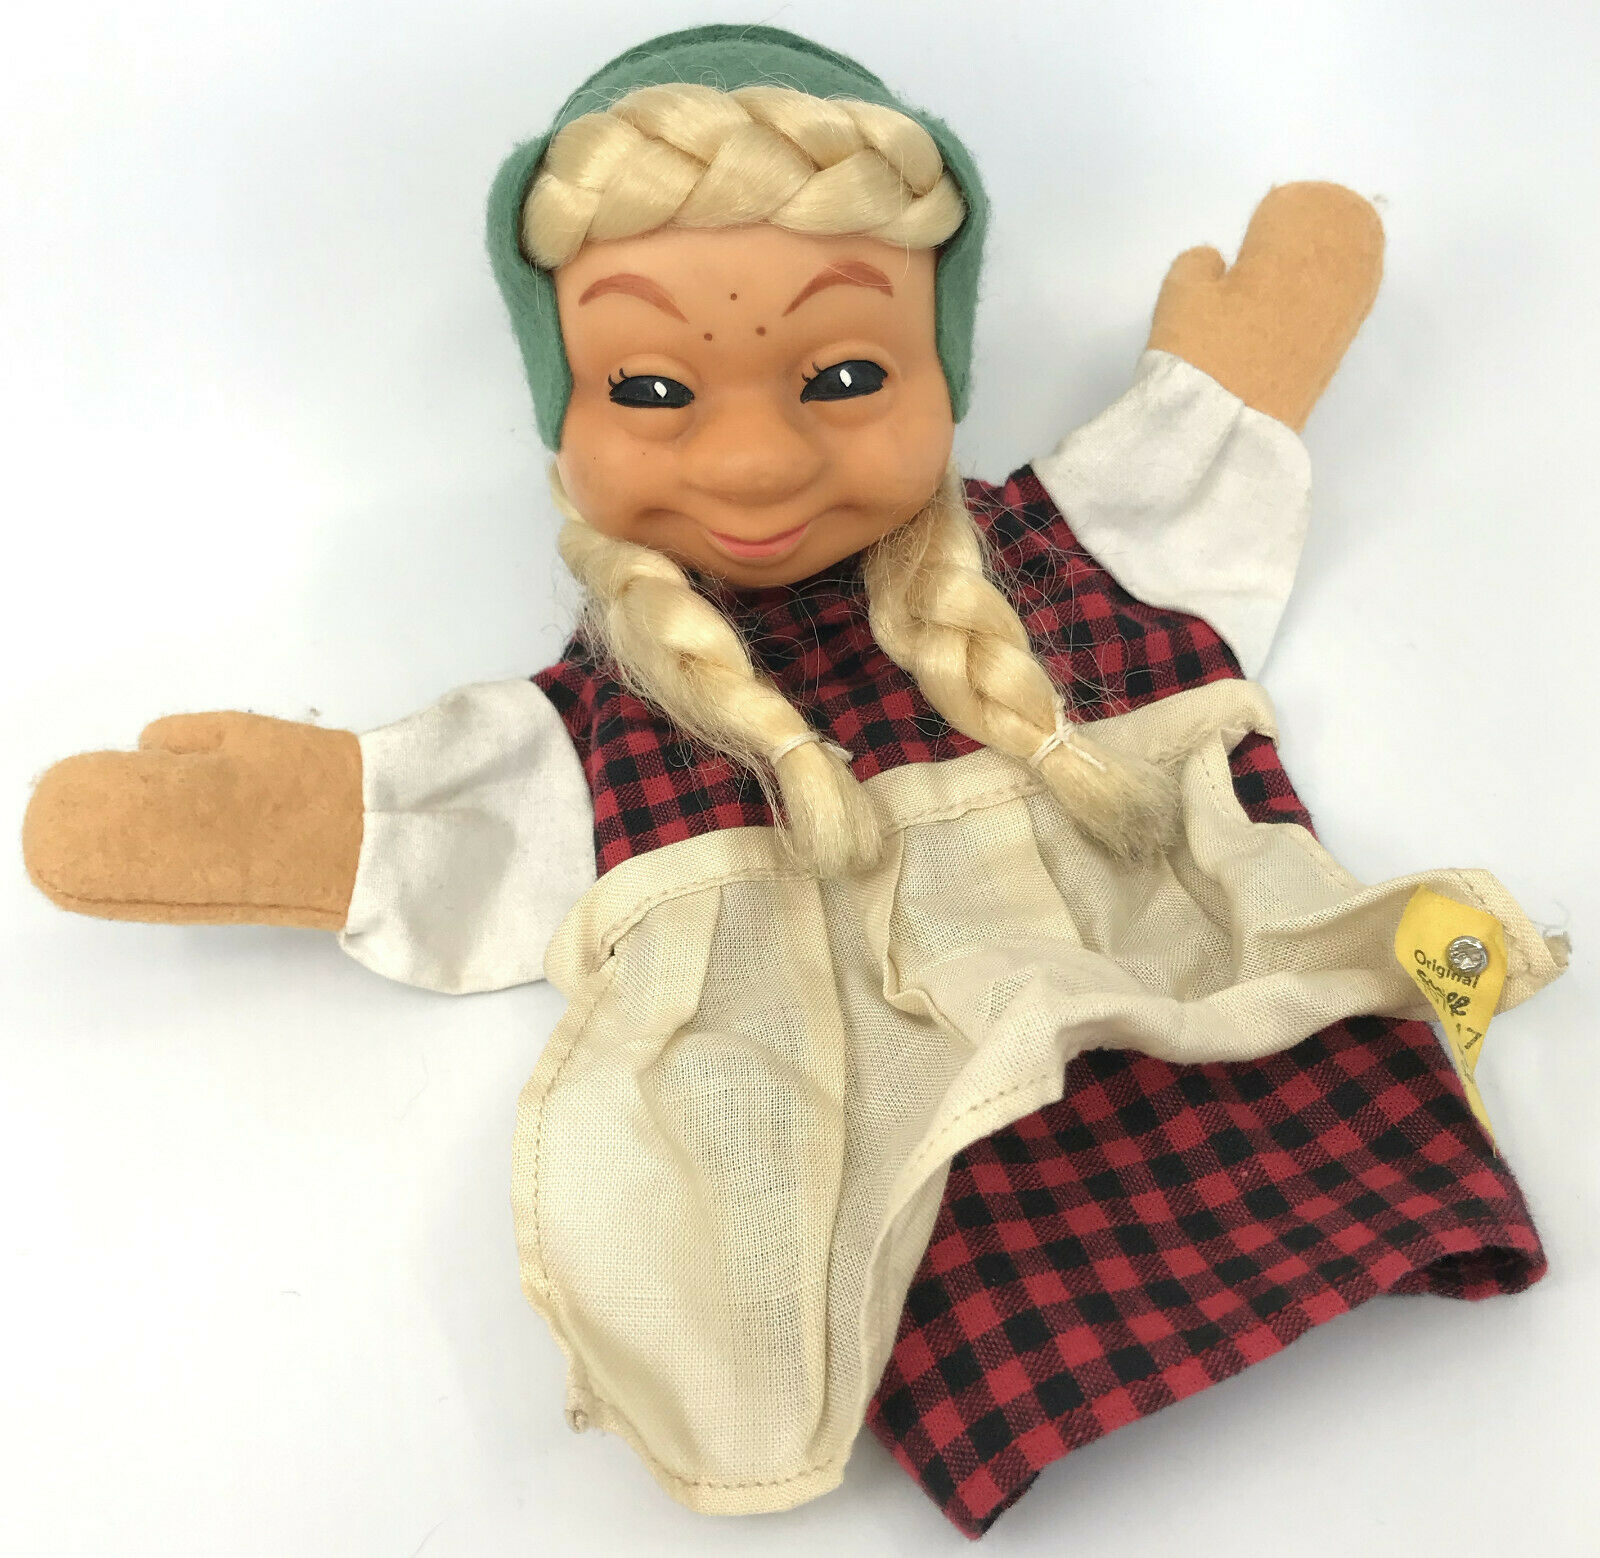 Steiff Gretel He Puppet Puppet Puppet Country Girl ID Button Tag 1970s Vinyl Fabric Vintage 904739